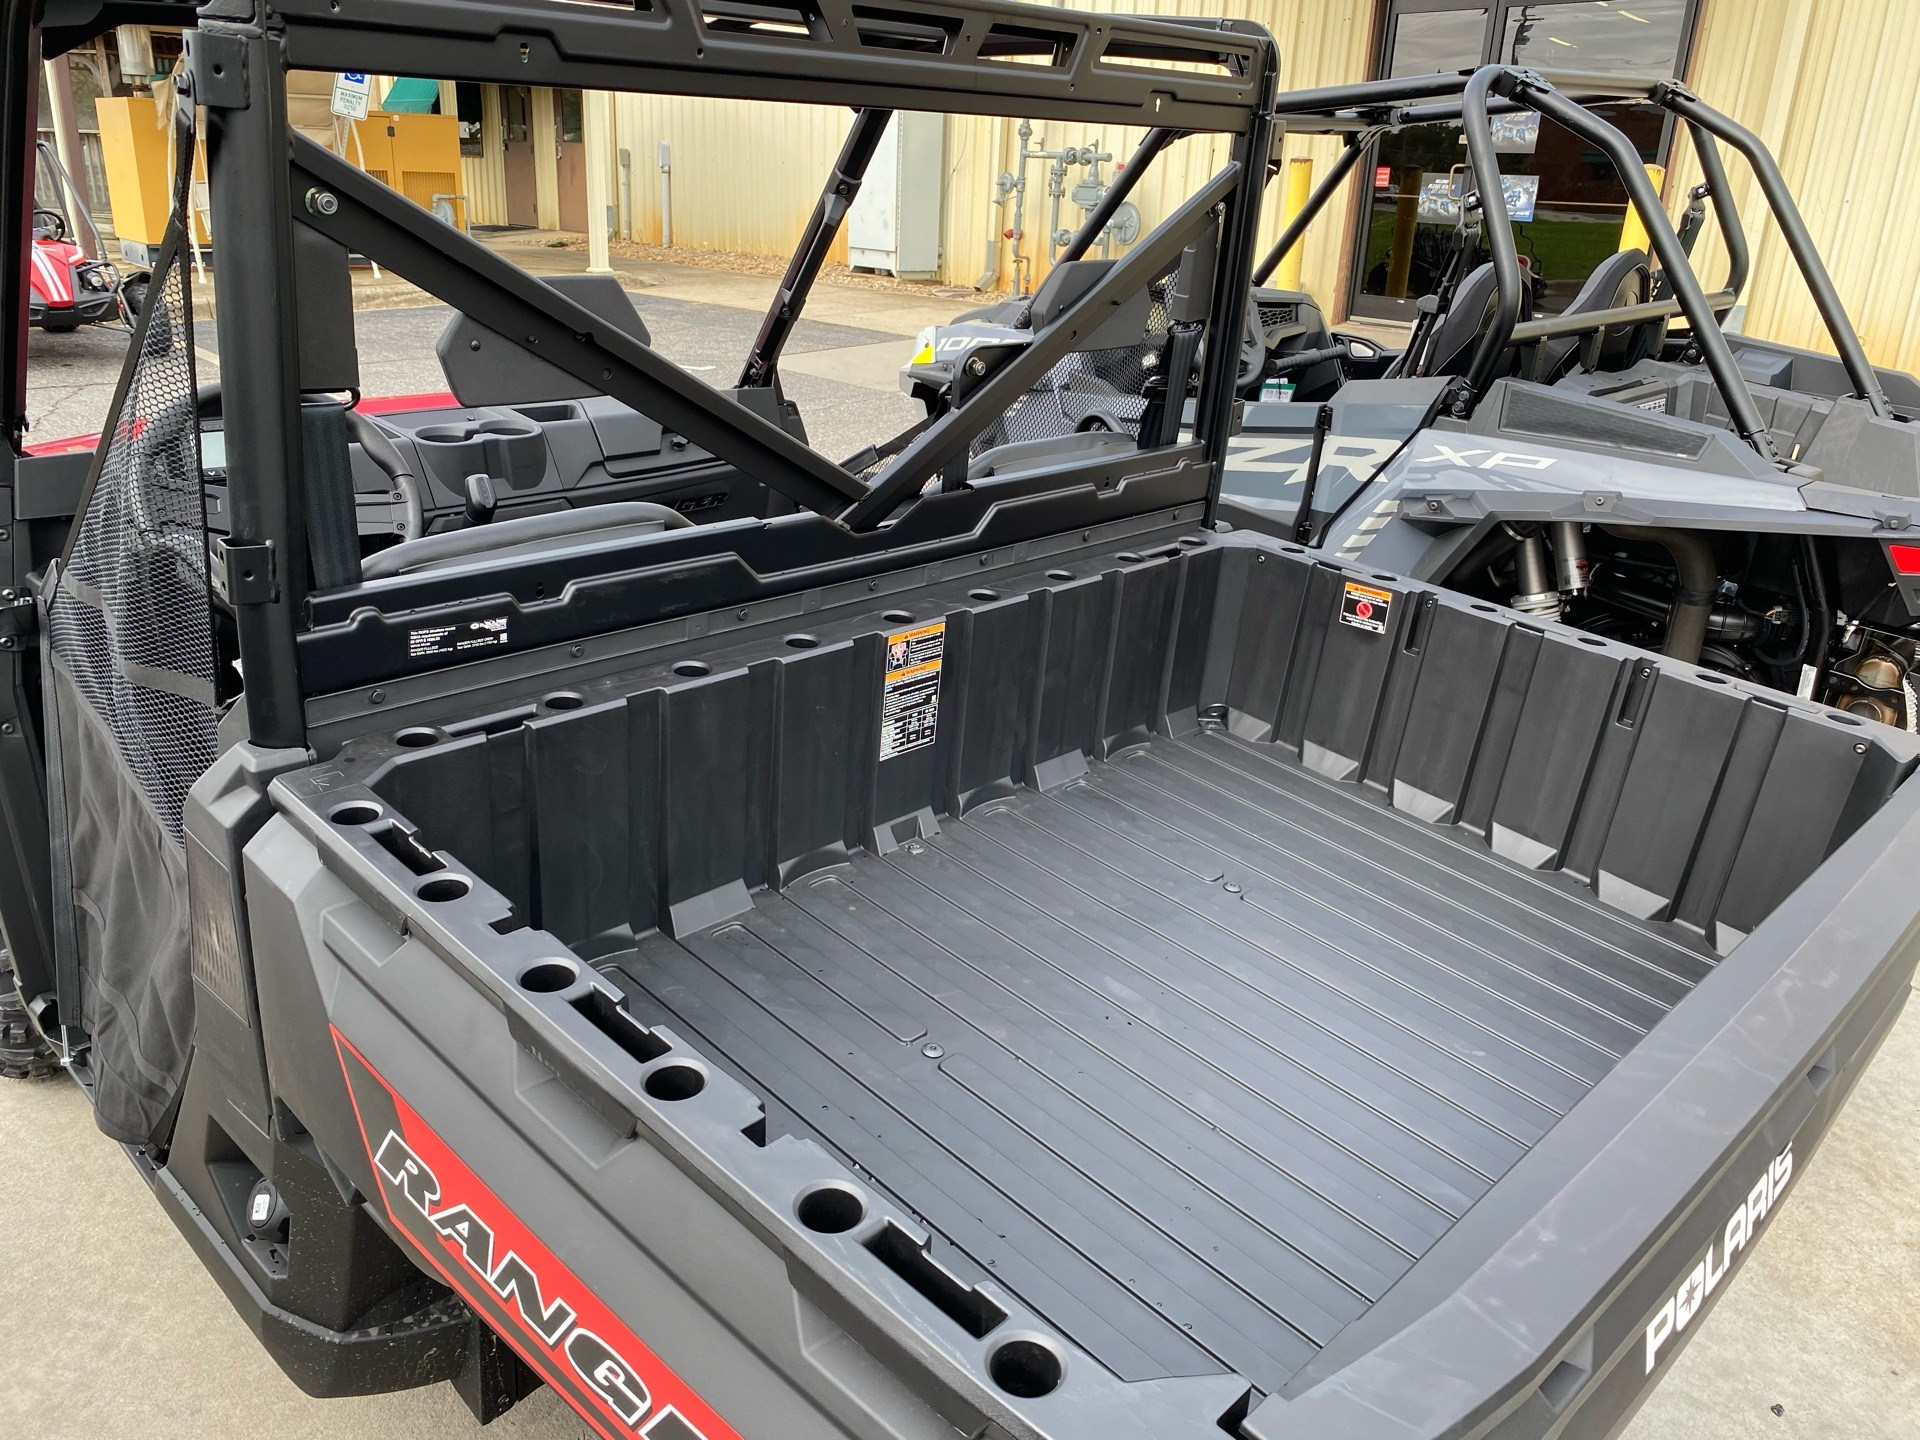 2021 Polaris Ranger 1000 EPS in Statesville, North Carolina - Photo 5